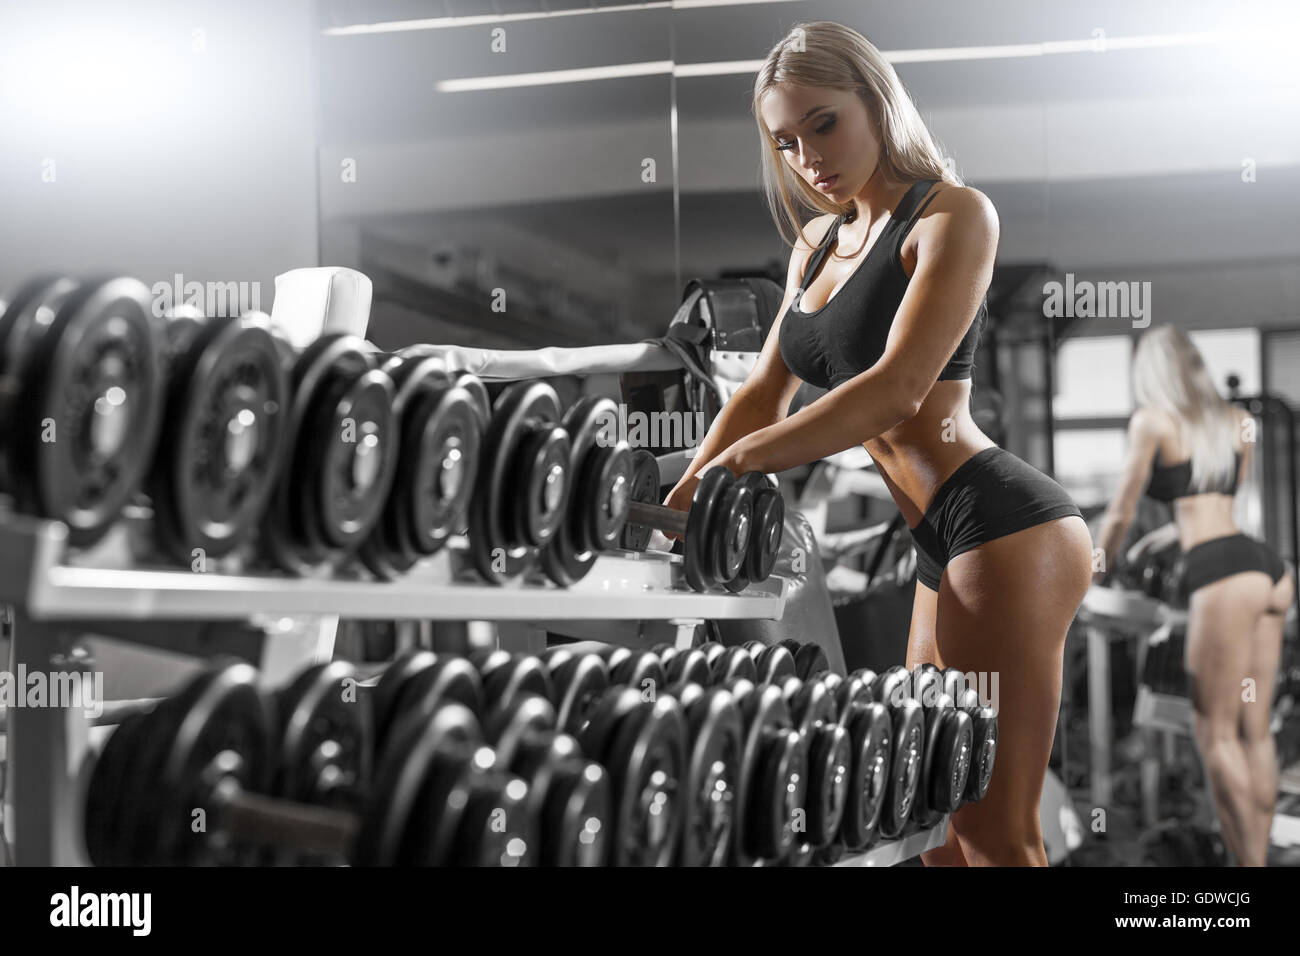 athletic young blondy doing exercise in the gym - Stock Image